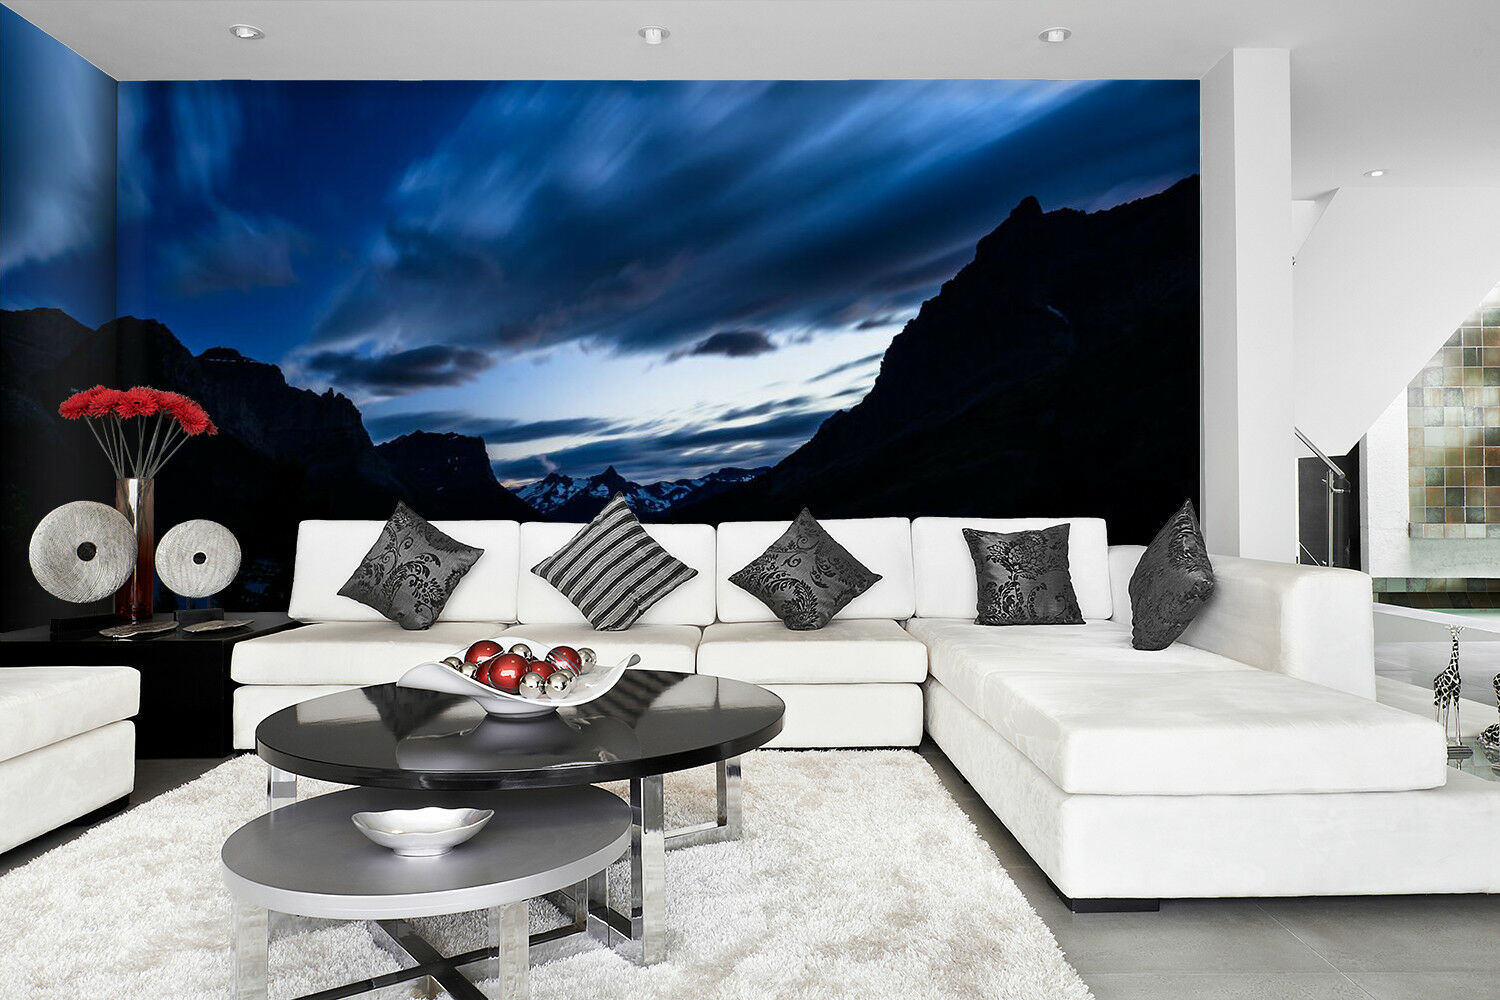 3D Bule Sky 505 Wallpaper Murals Wall Print Wallpaper Mural AJ WALL UK Summer